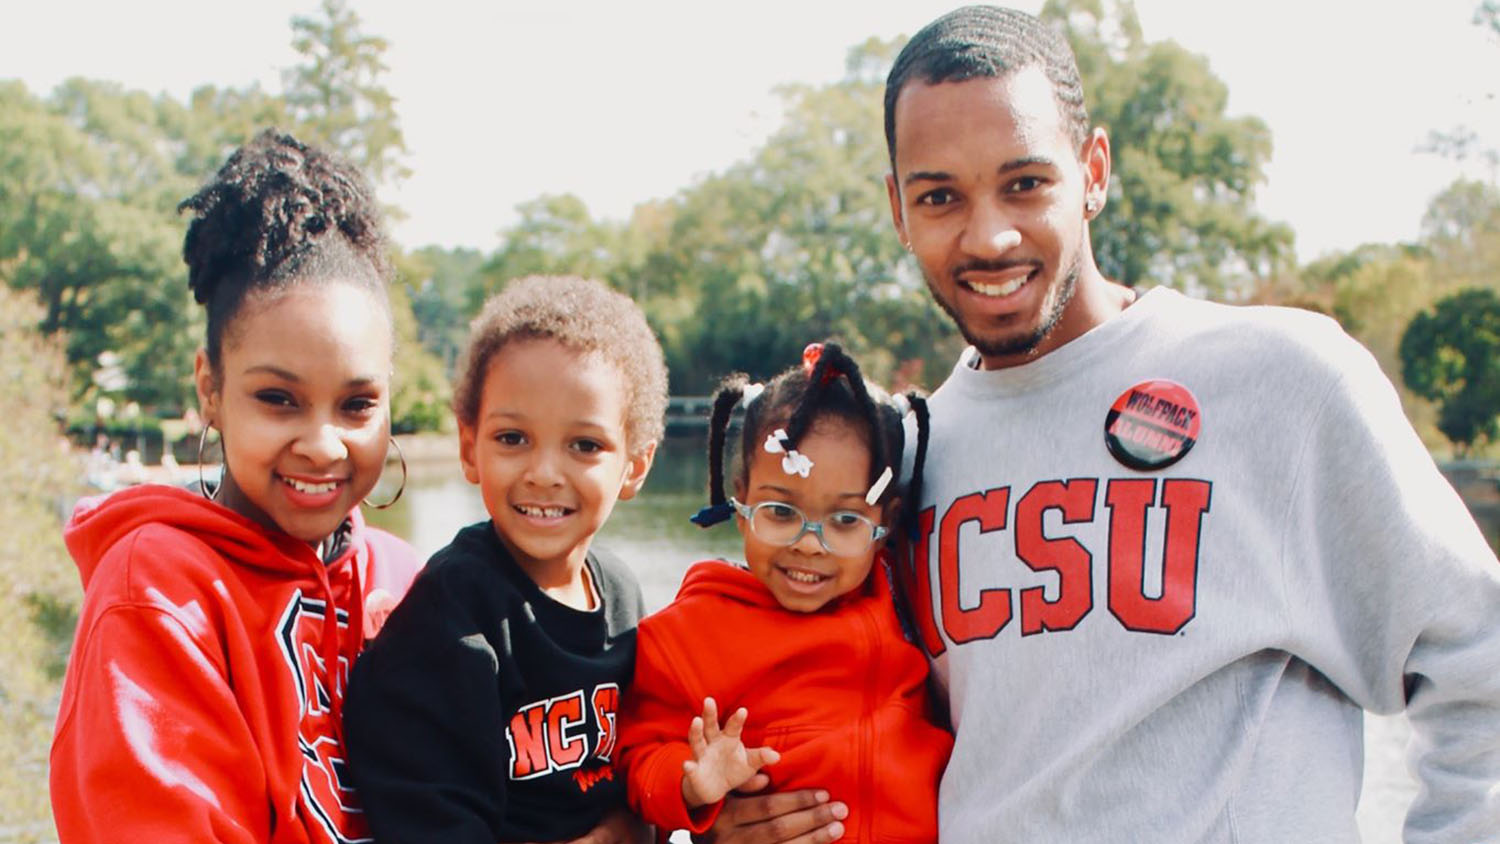 Janell Miller with her family